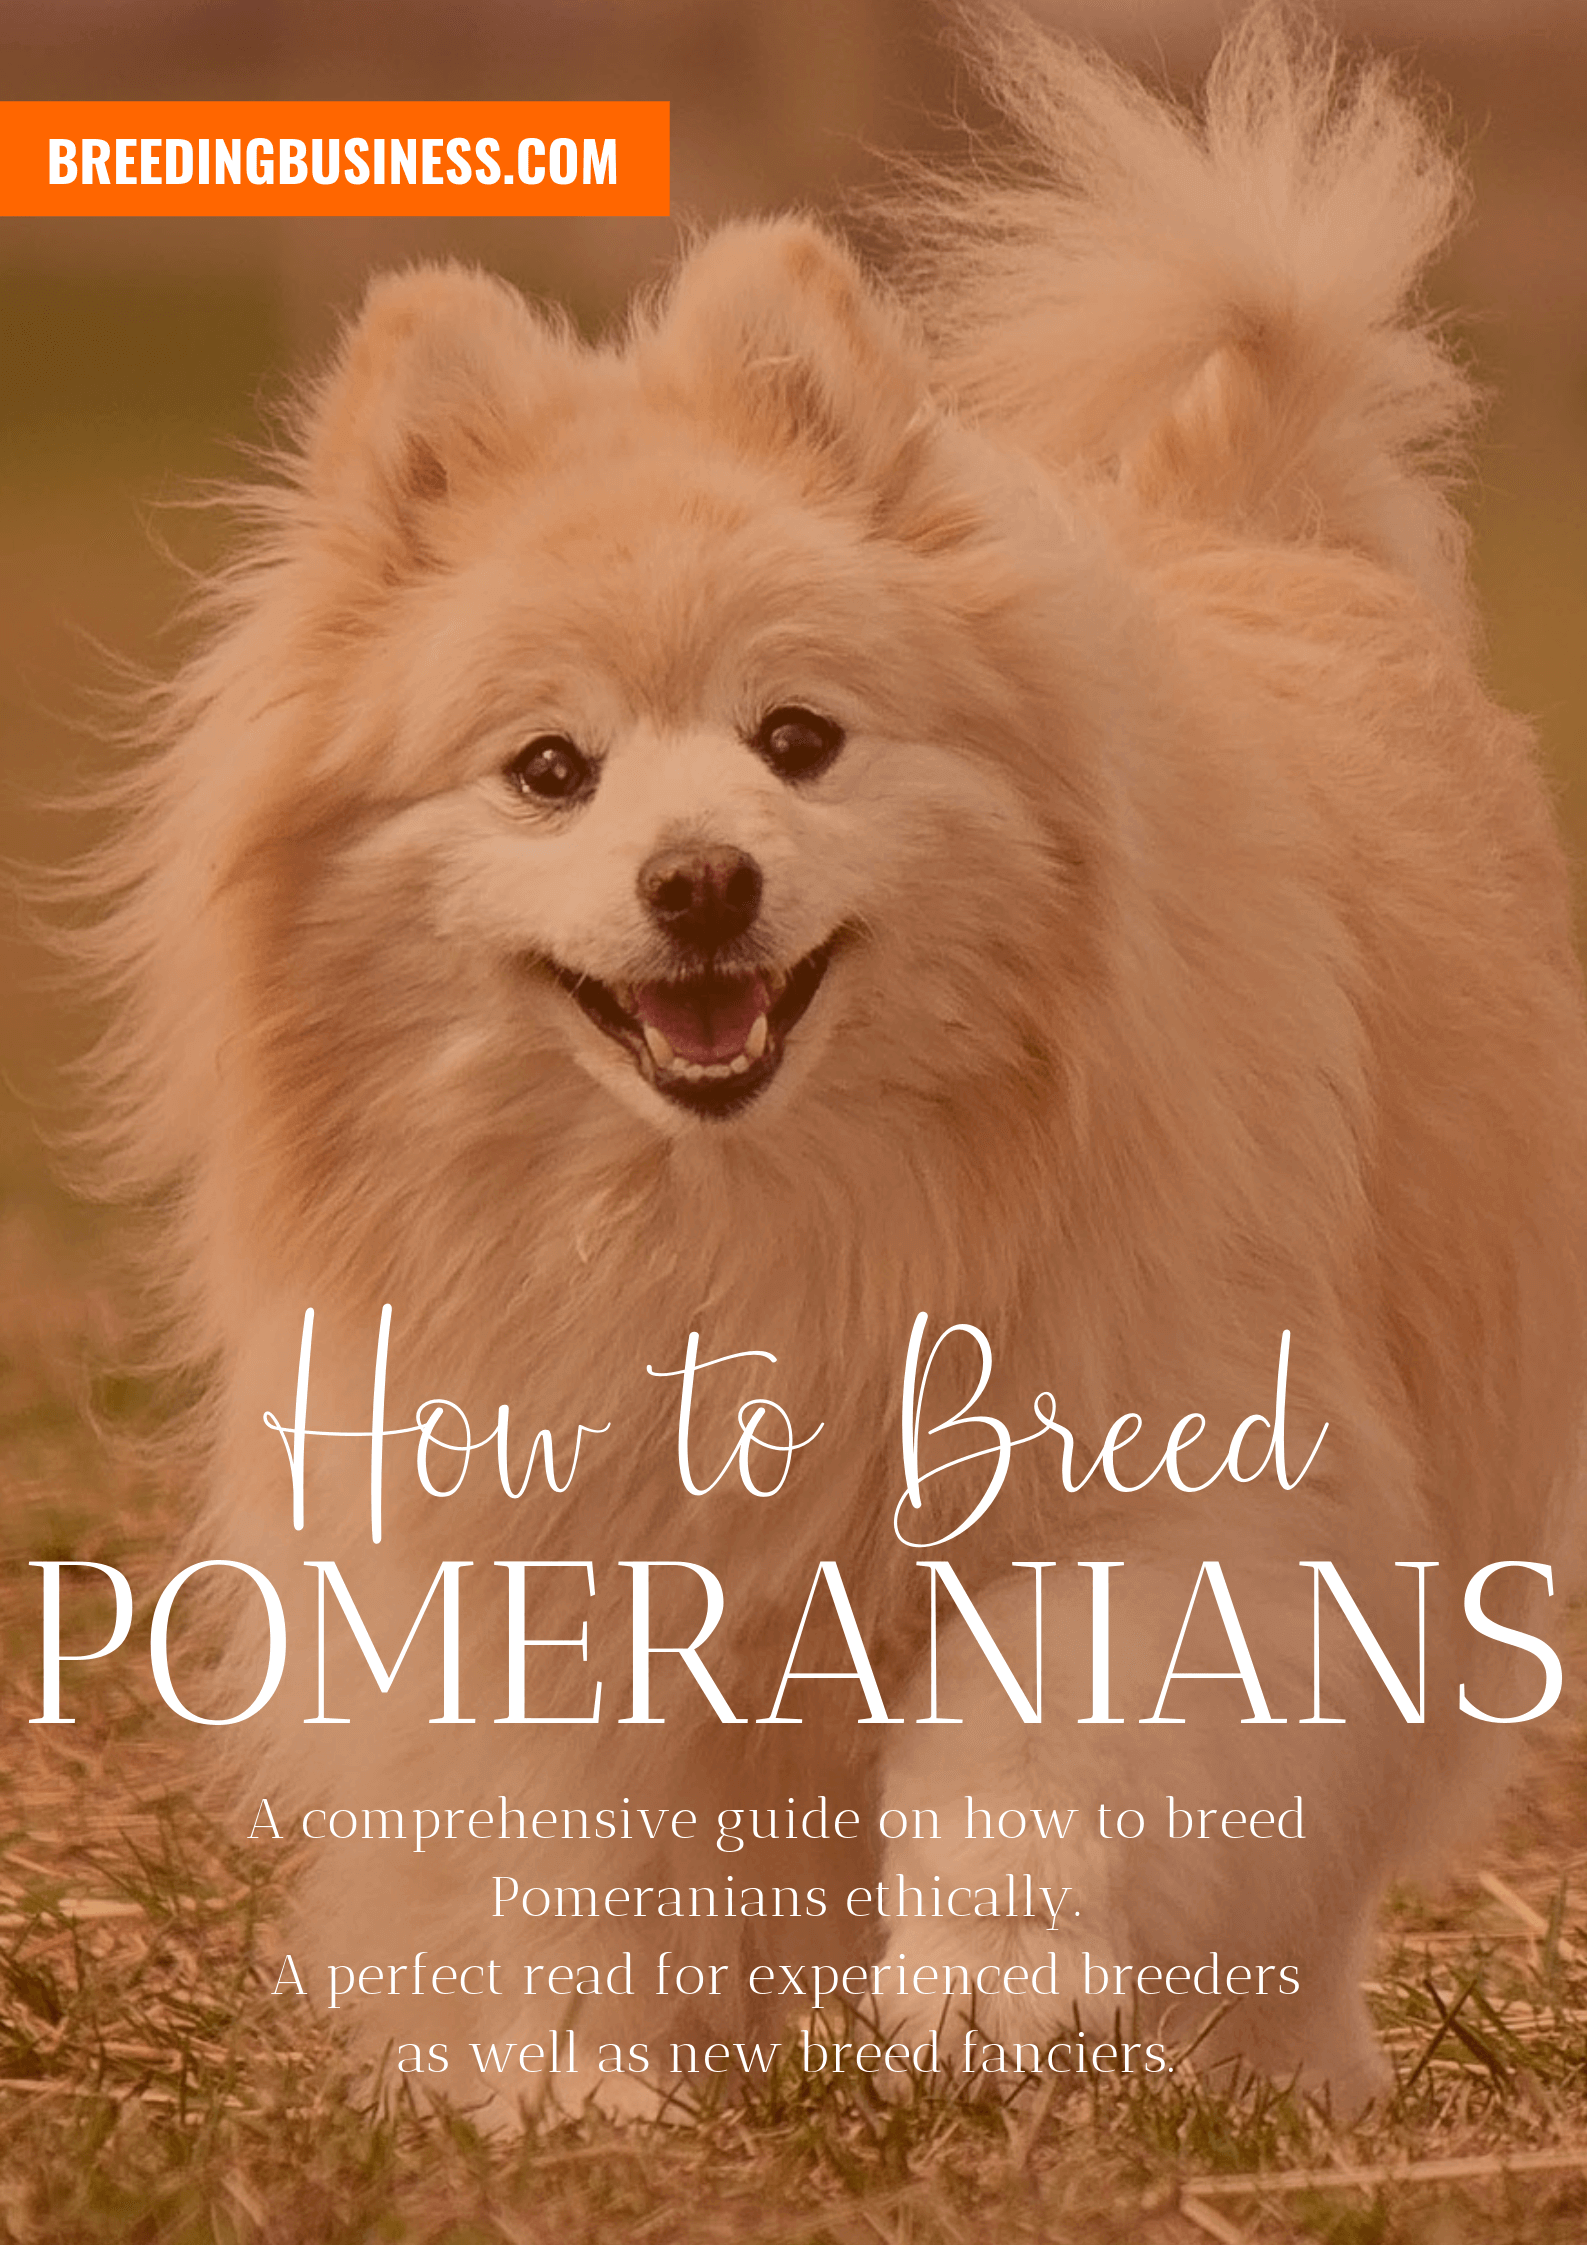 breeding Pomeranians